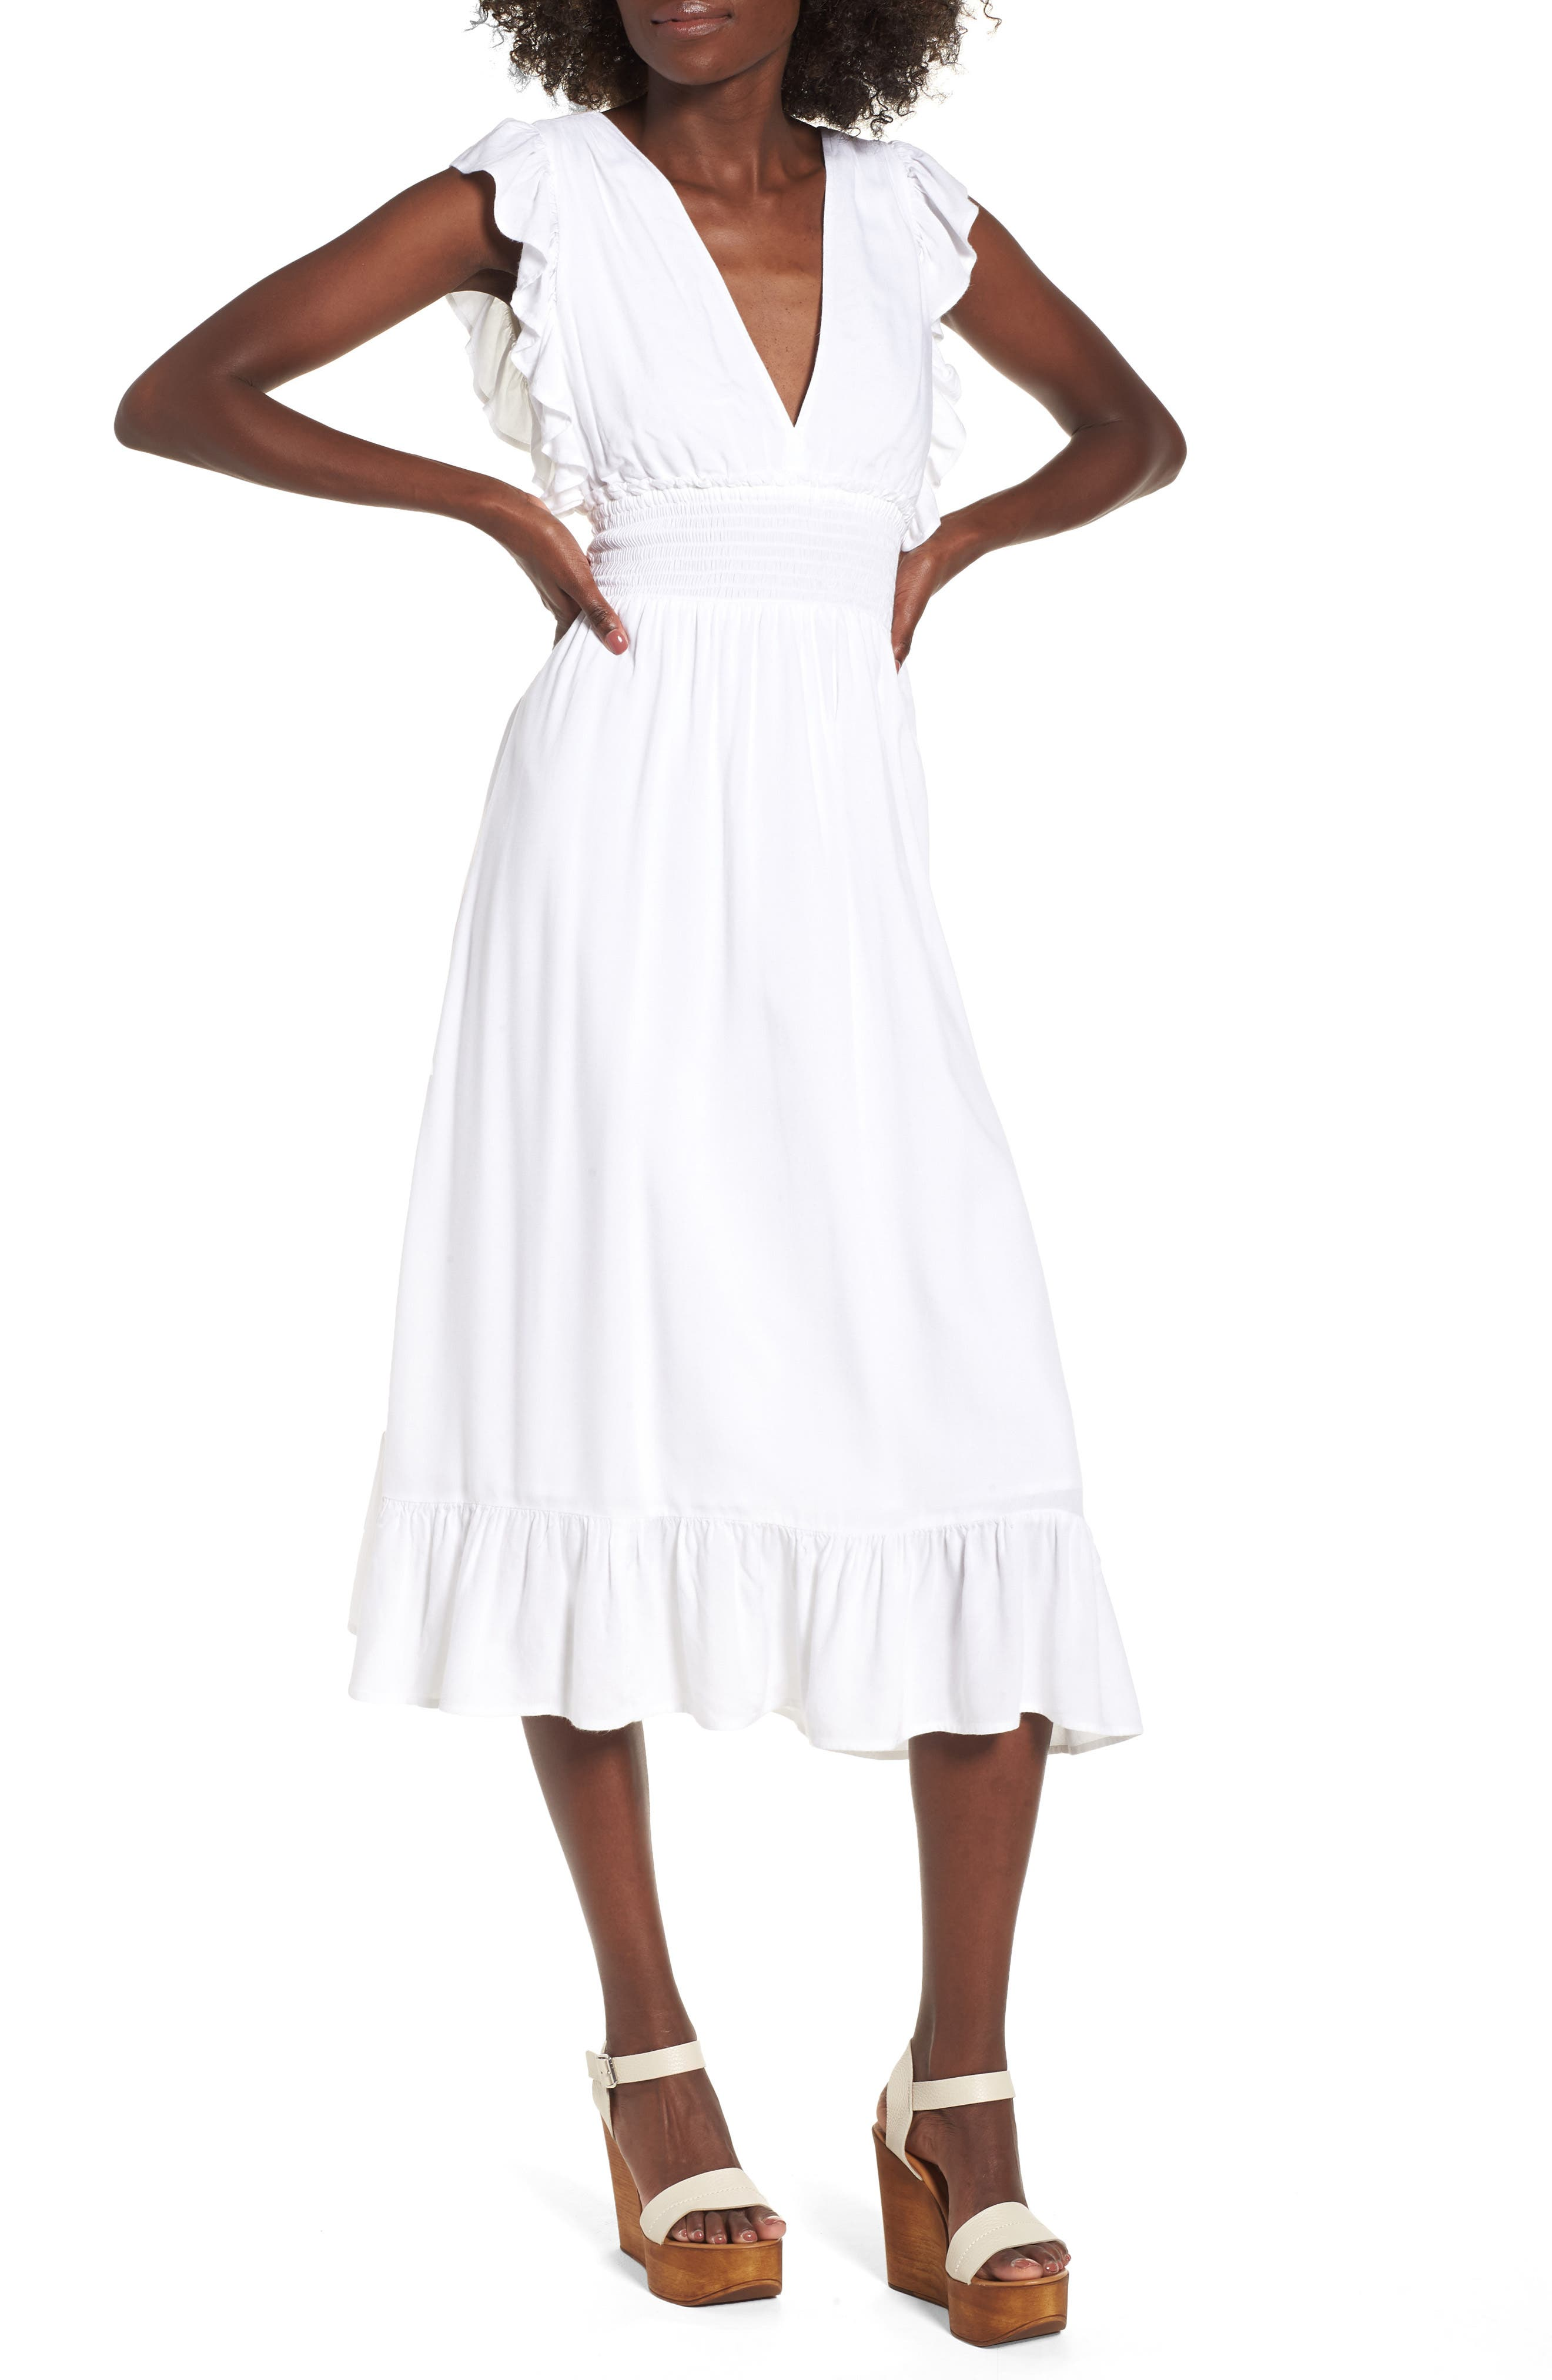 Dress for Women, Evening Cocktail Party On Sale, White, Cotton, 2017, IT 44 - US 6 - F 40 Tory Burch